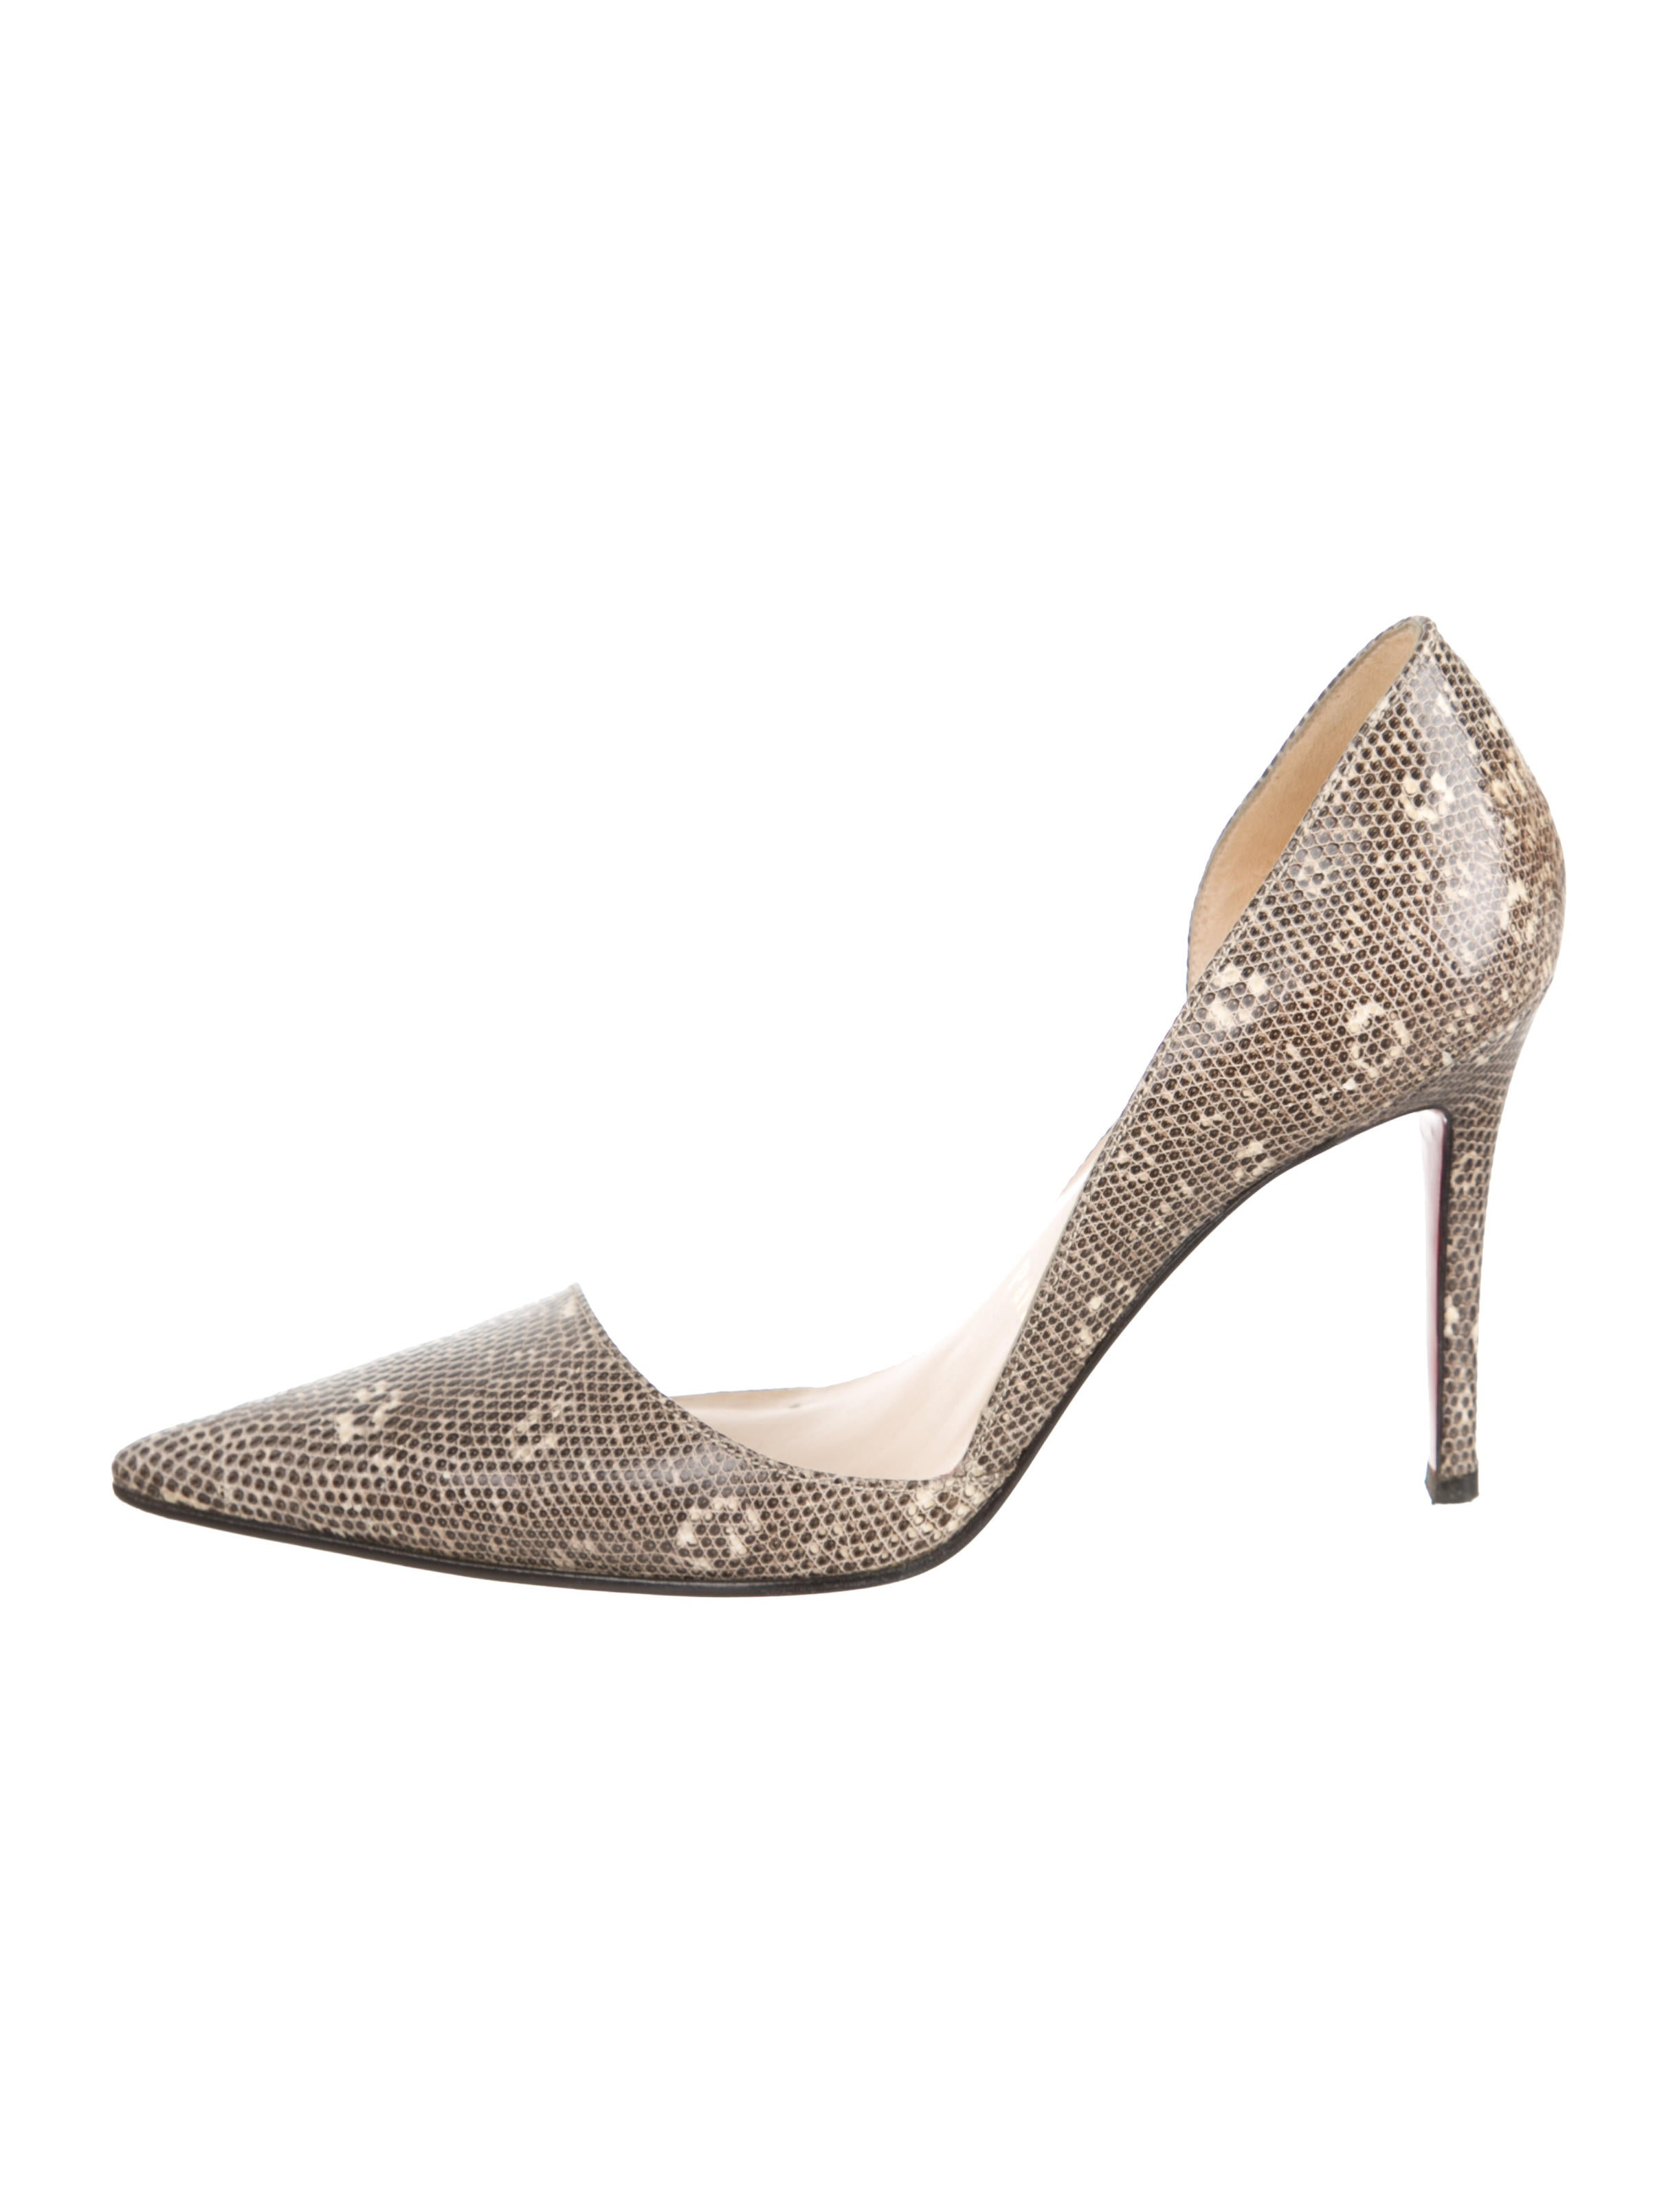 cheap sale finishline Christian Louboutin Lizard Pointed-Toe Pumps amazing price online great deals for sale outlet hot sale clearance professional RThB8KLFs